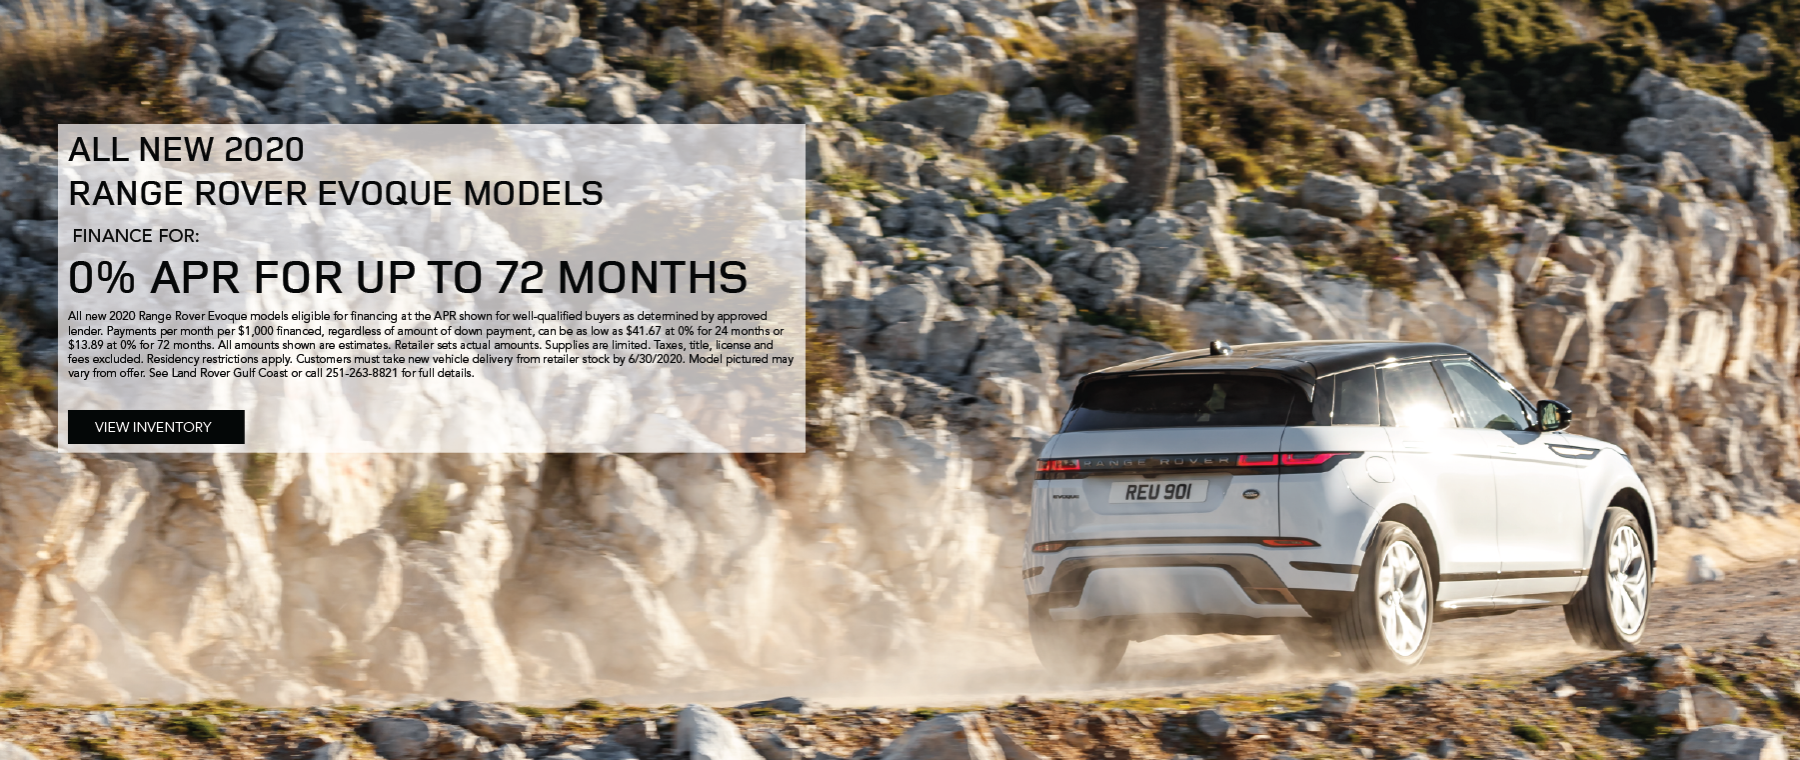 White 2020 Range Rover Evoque on dirt road. 0% APR on all 2020 Range Rover Evoque models up to 72 months. All new 2020 Range Rover Evoque models eligible for financing at the APR shown for well-qualified buyers as determined by approved lender. Payments per month per $1,000 financed, regardless of amount of down payment, can be as low as $41.67 at 0% for 24 months or $13.89 at 0% for 72 months. All amounts shown are estimates. Retailer sets actual amounts. Supplies are limited. Taxes, title, license and fees excluded. Residency restrictions apply. Customers must take new vehicle delivery from retailer stock by 6/30/2020. Model pictured may vary from offer. See Land Rover Gulf Coast or call 251-263-8821 for full details. Click to view inventory.